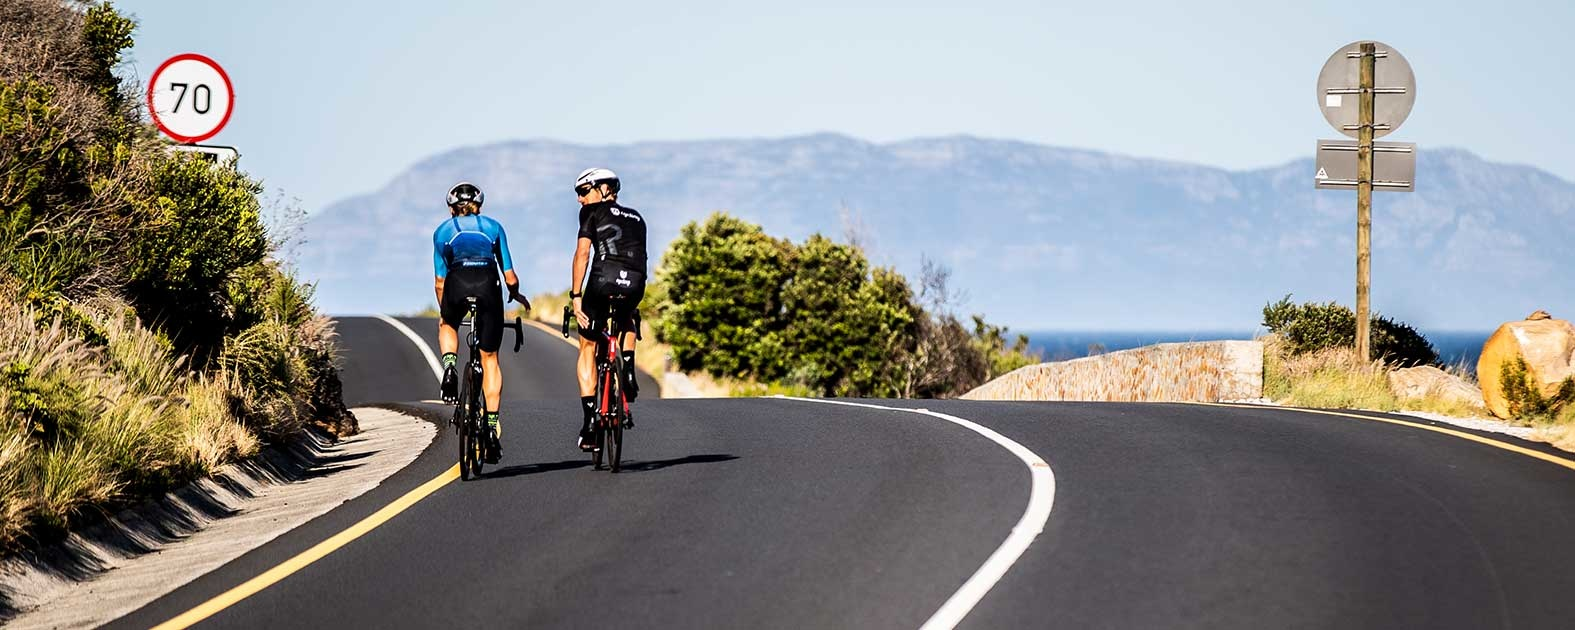 Pro Triathletes Andrea Salvisberg and Jamie Riddle training in South Africa